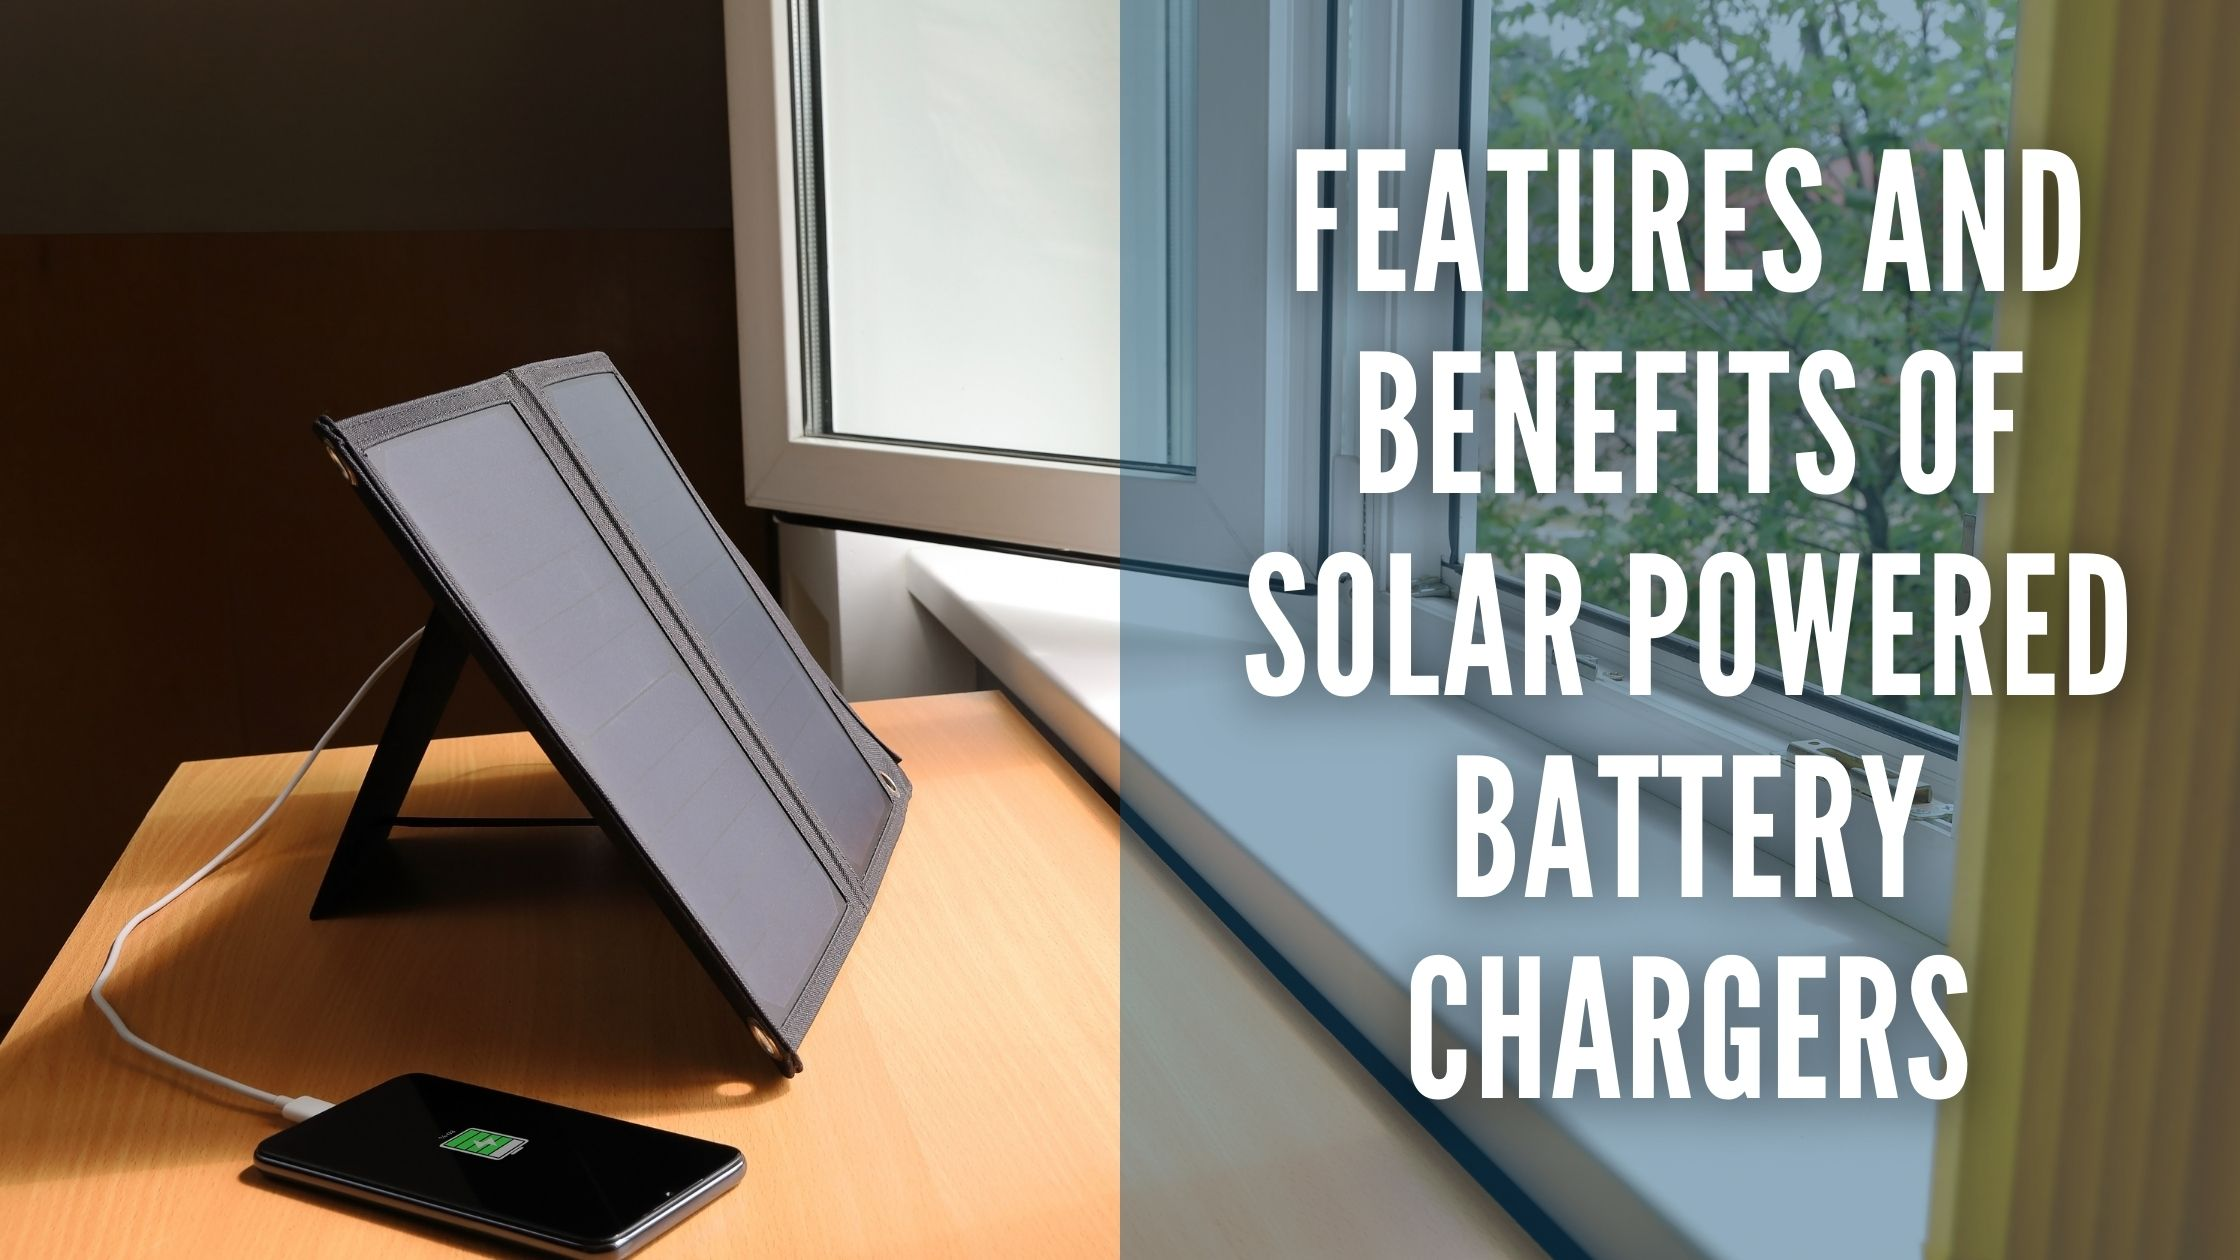 Features and Benefits of Solar Powered Battery Chargers